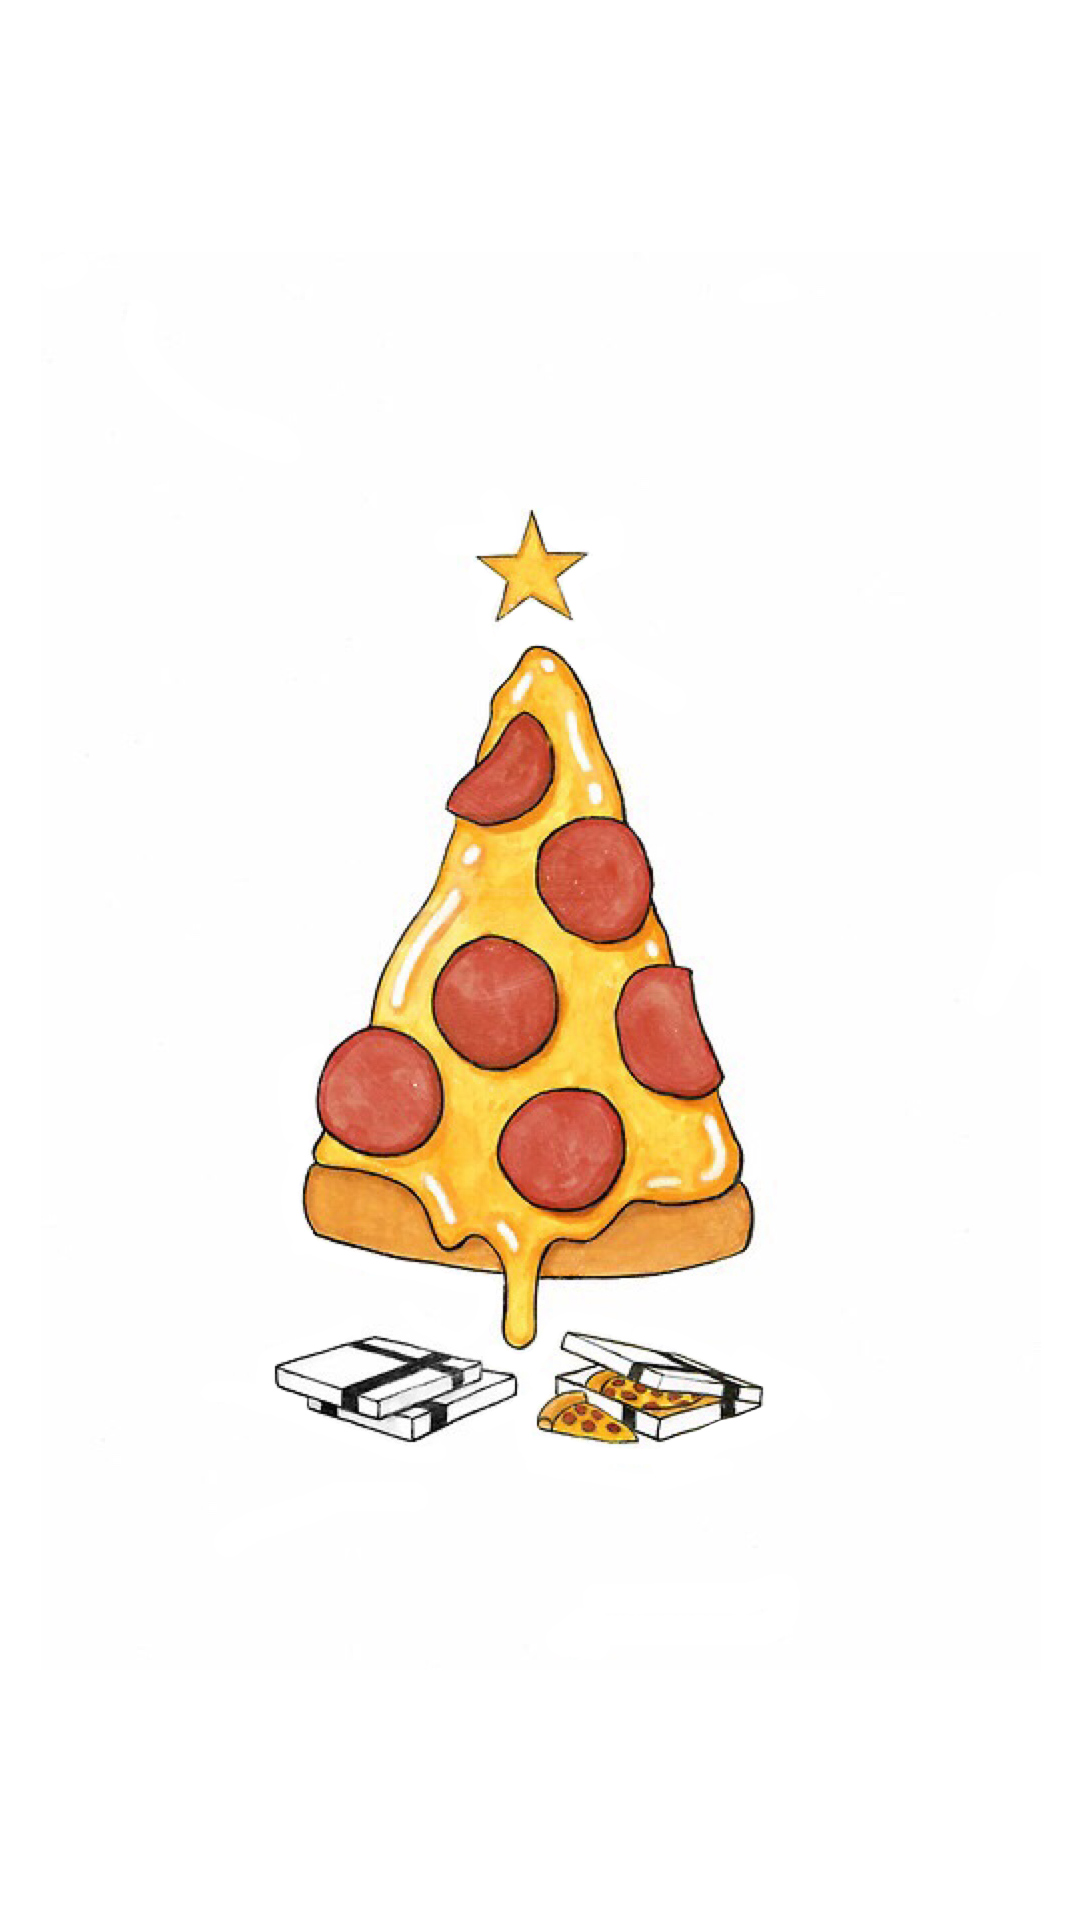 Funny-Pizza-Christmas-Tree-Android-wallpaper-wp5405160